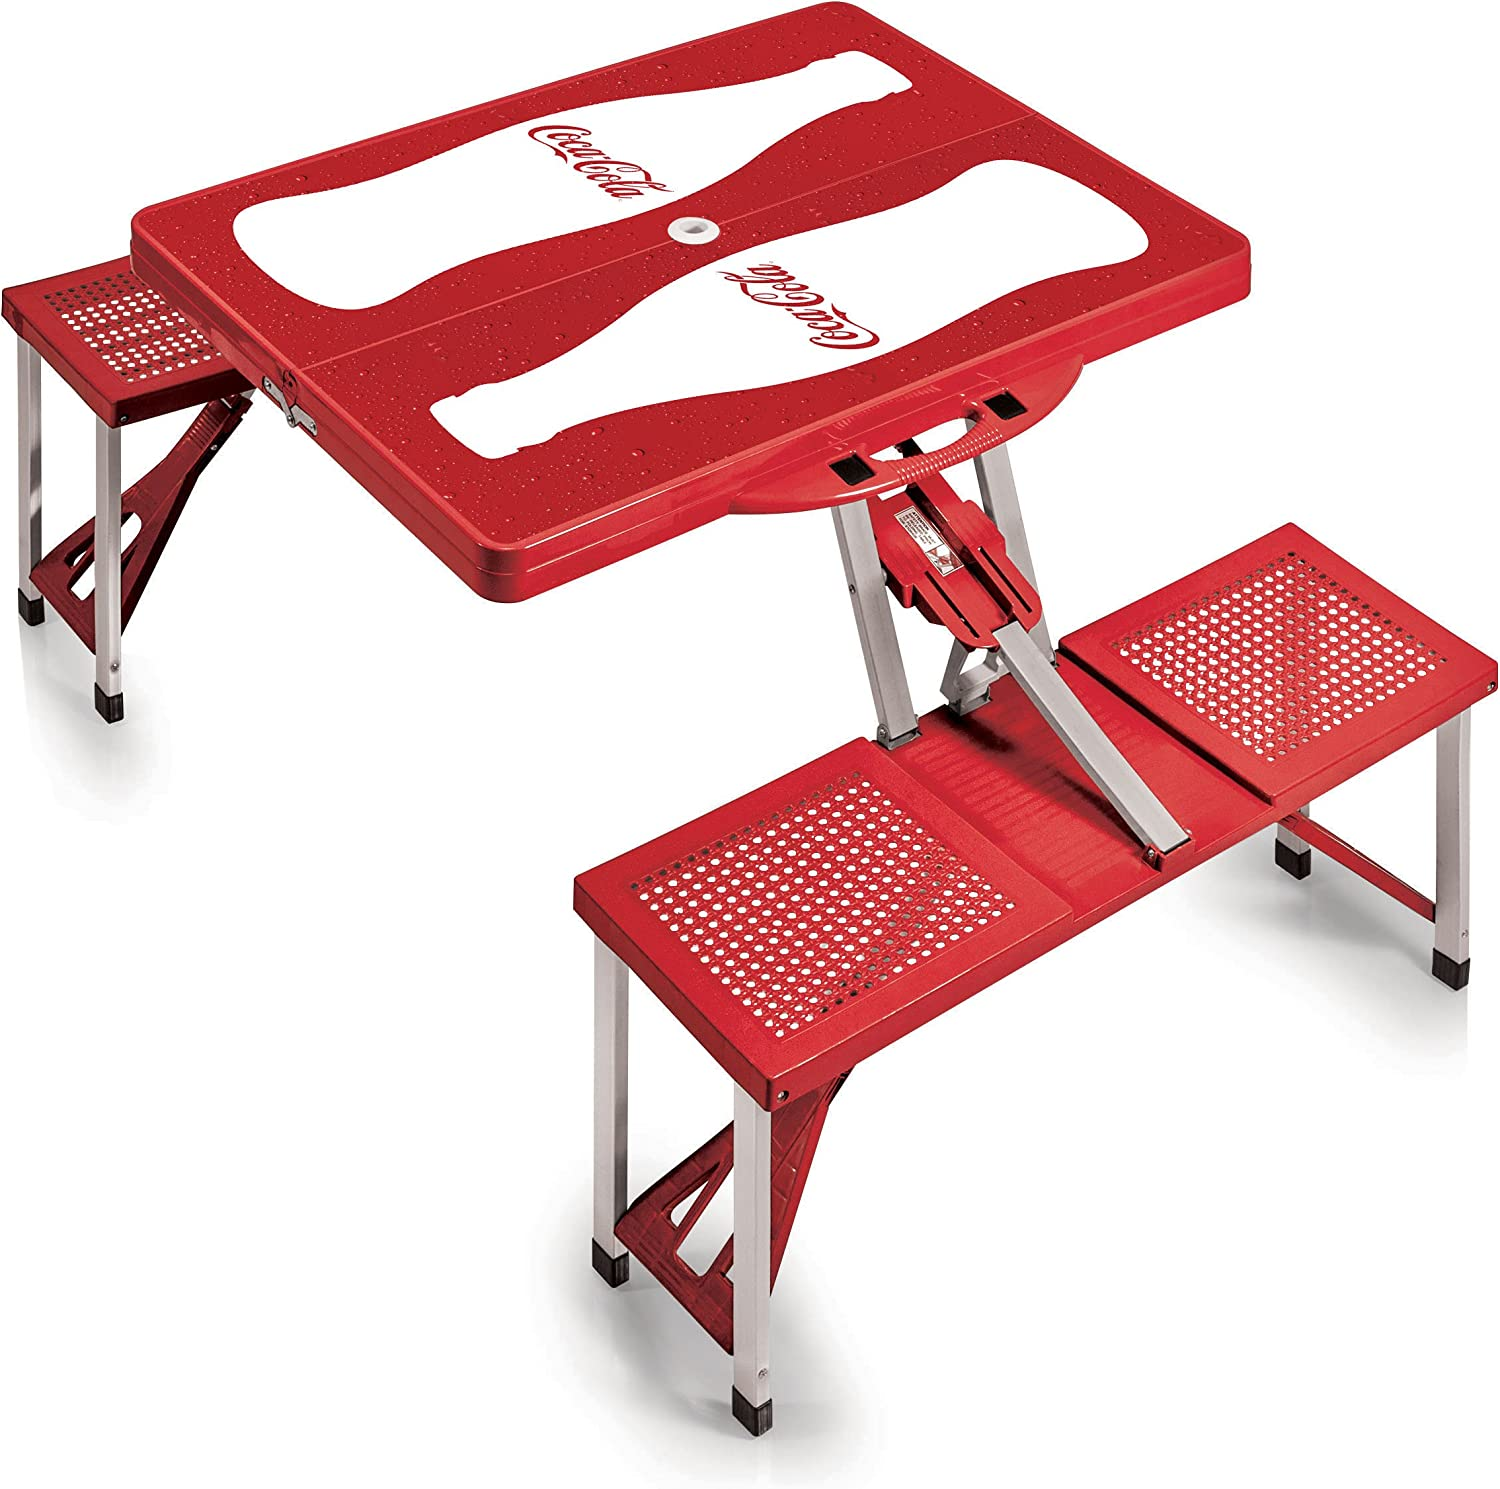 Picnic Time CocaCola Portable Picnic Table with Seating for 4, Bottle Print